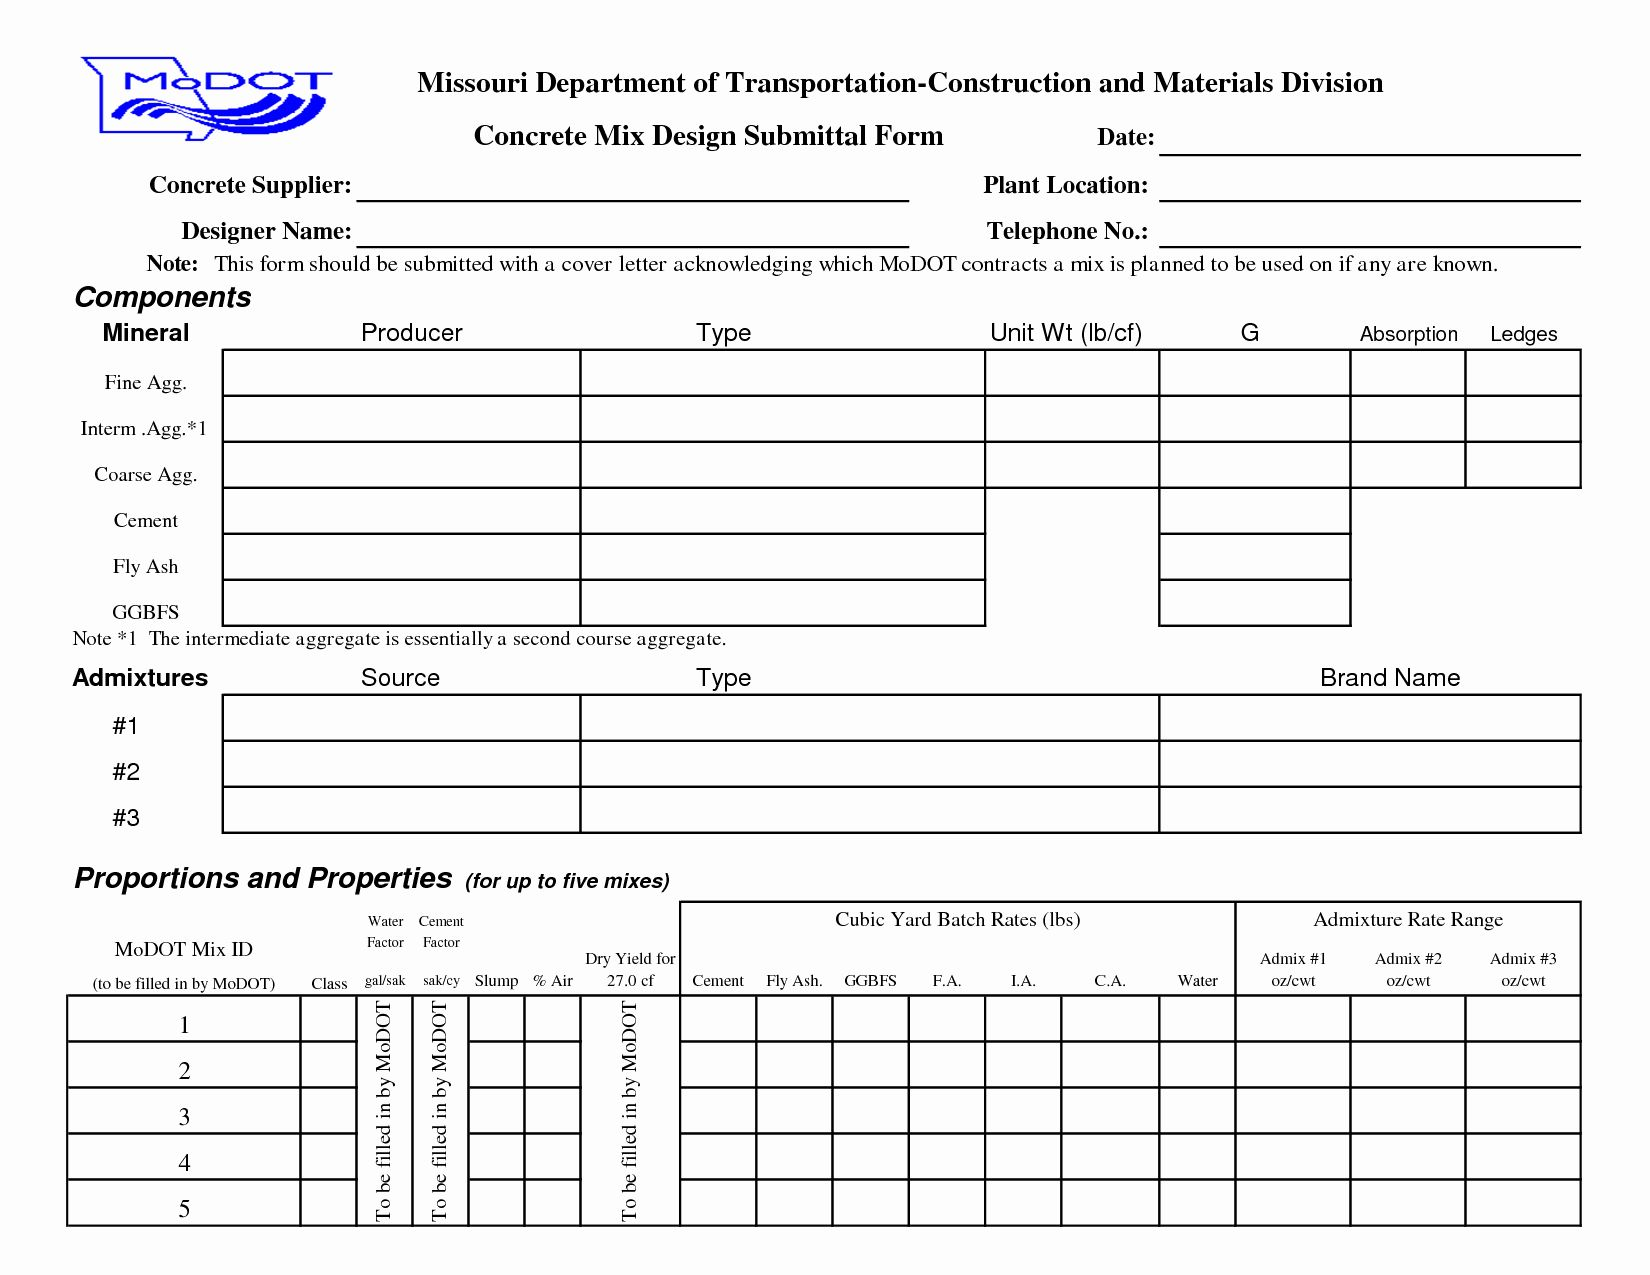 Construction Submittal Form Template Luxury Transmittal Form Cms Submittal Form Templates Action Plan Template Construction submittal cover sheet template